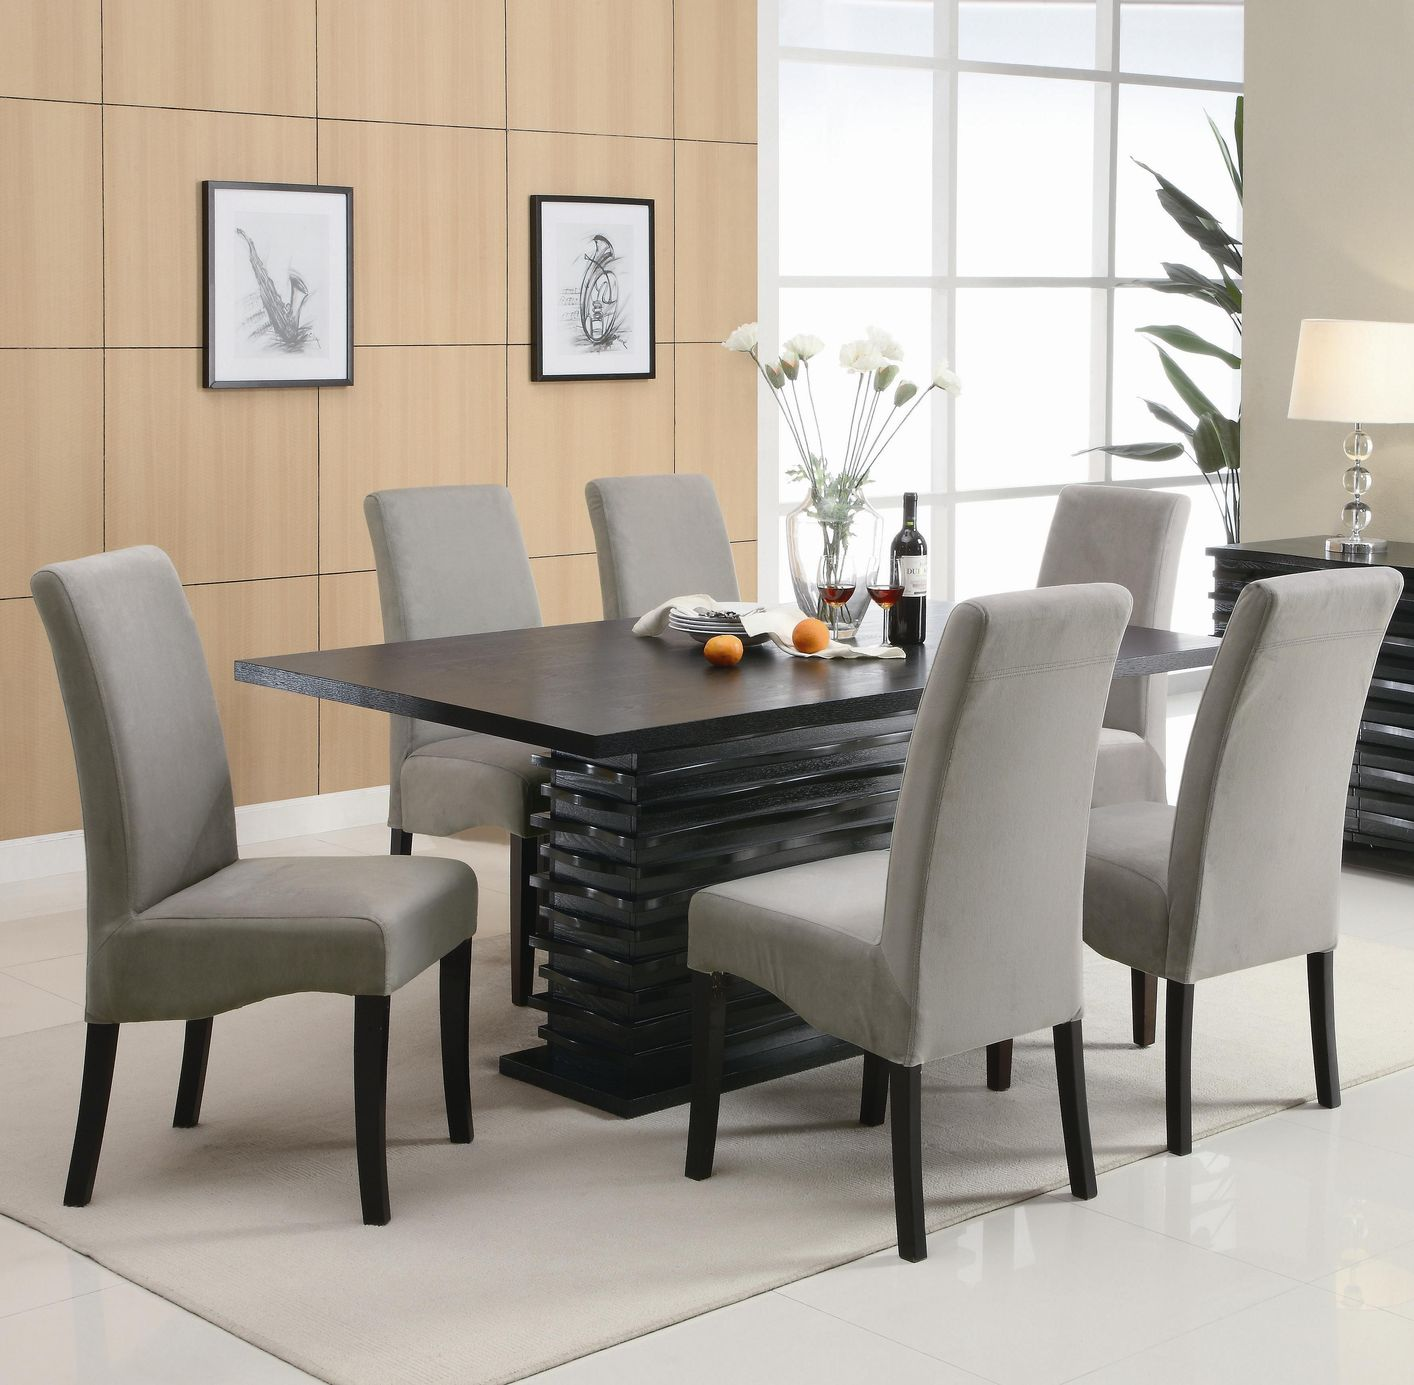 Casual Contemporary Dark Wood Dining Table Chairs Dining: Coaster Stanton 102061 102062 Black Wood Dining Table Set